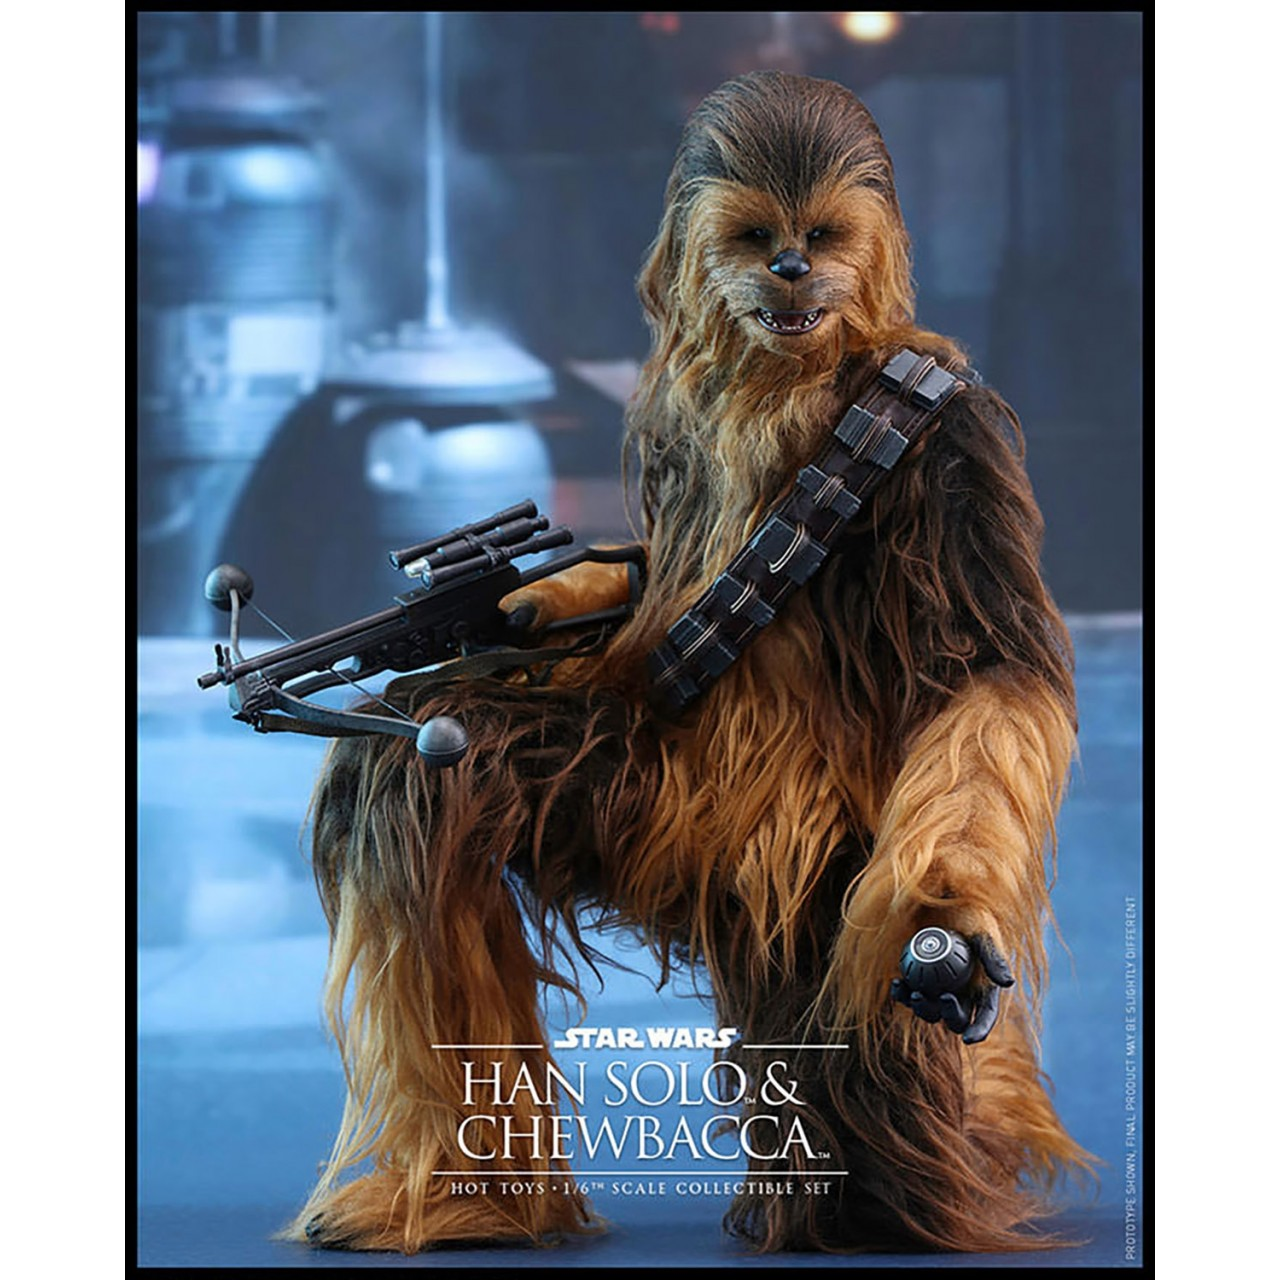 han solo chewbacca figure set 1 6 scale star wars collectibles